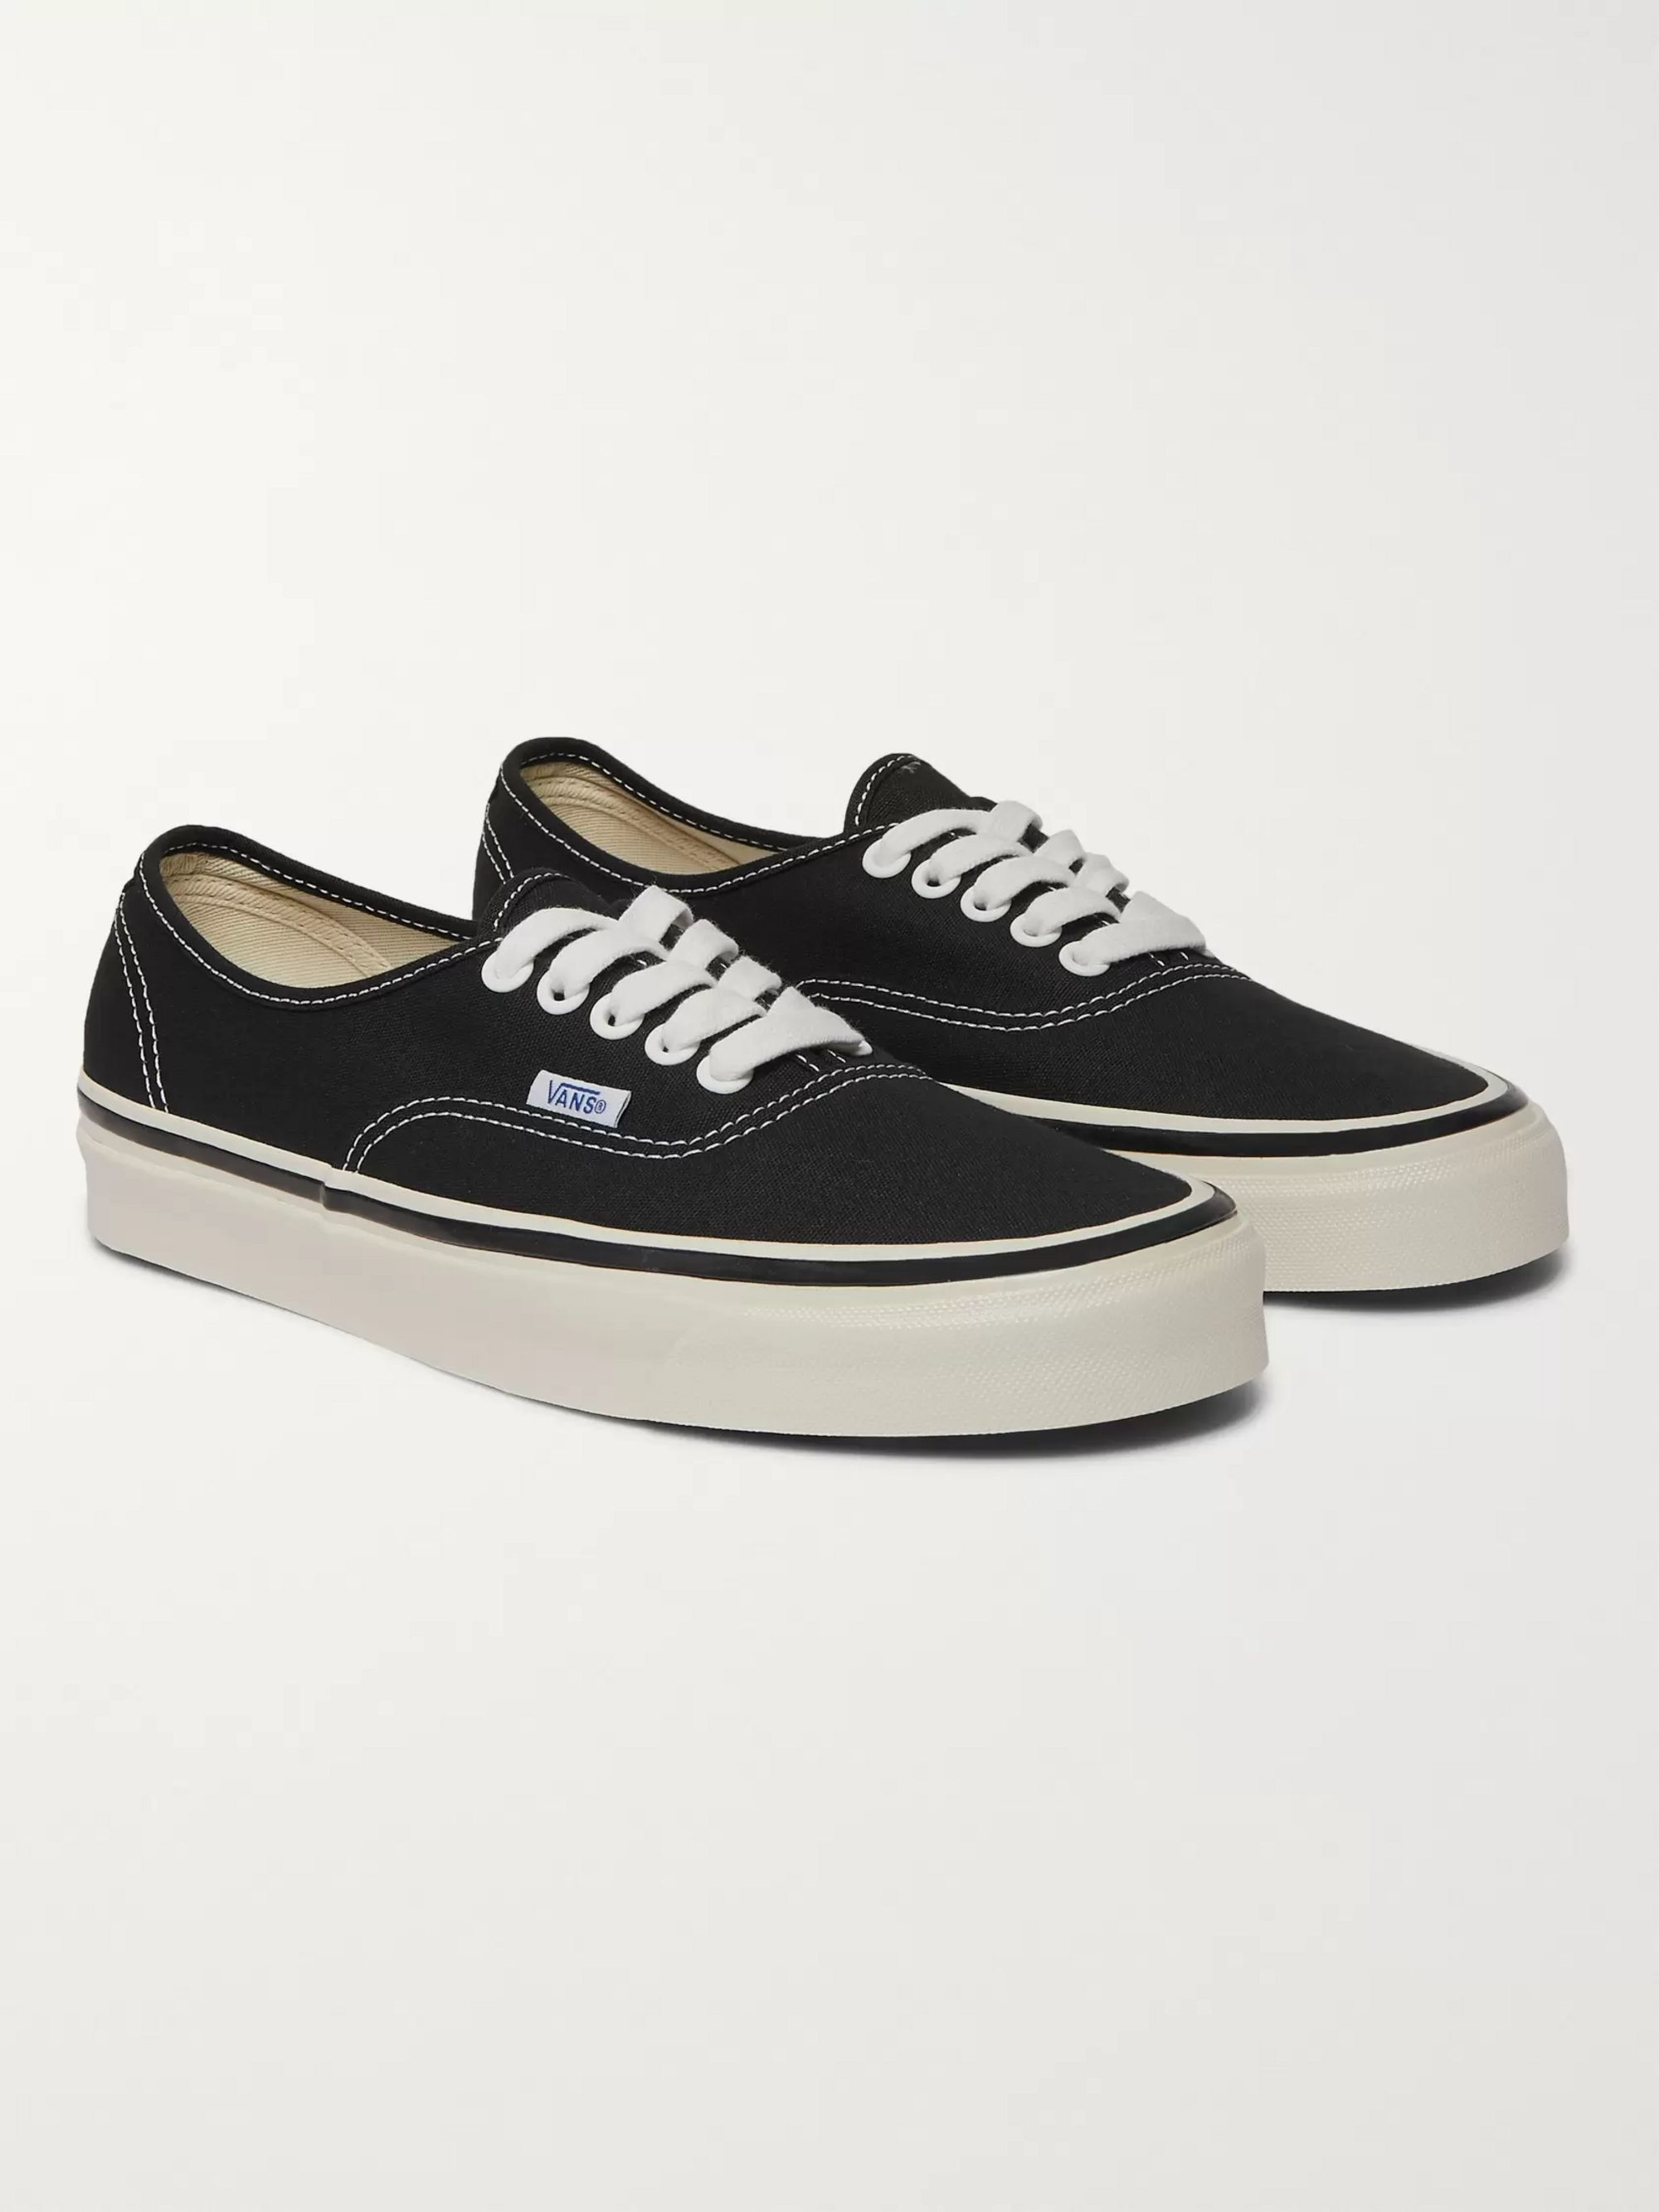 Anaheim Authentic 44 DX Sneakers Canvas Sneakers